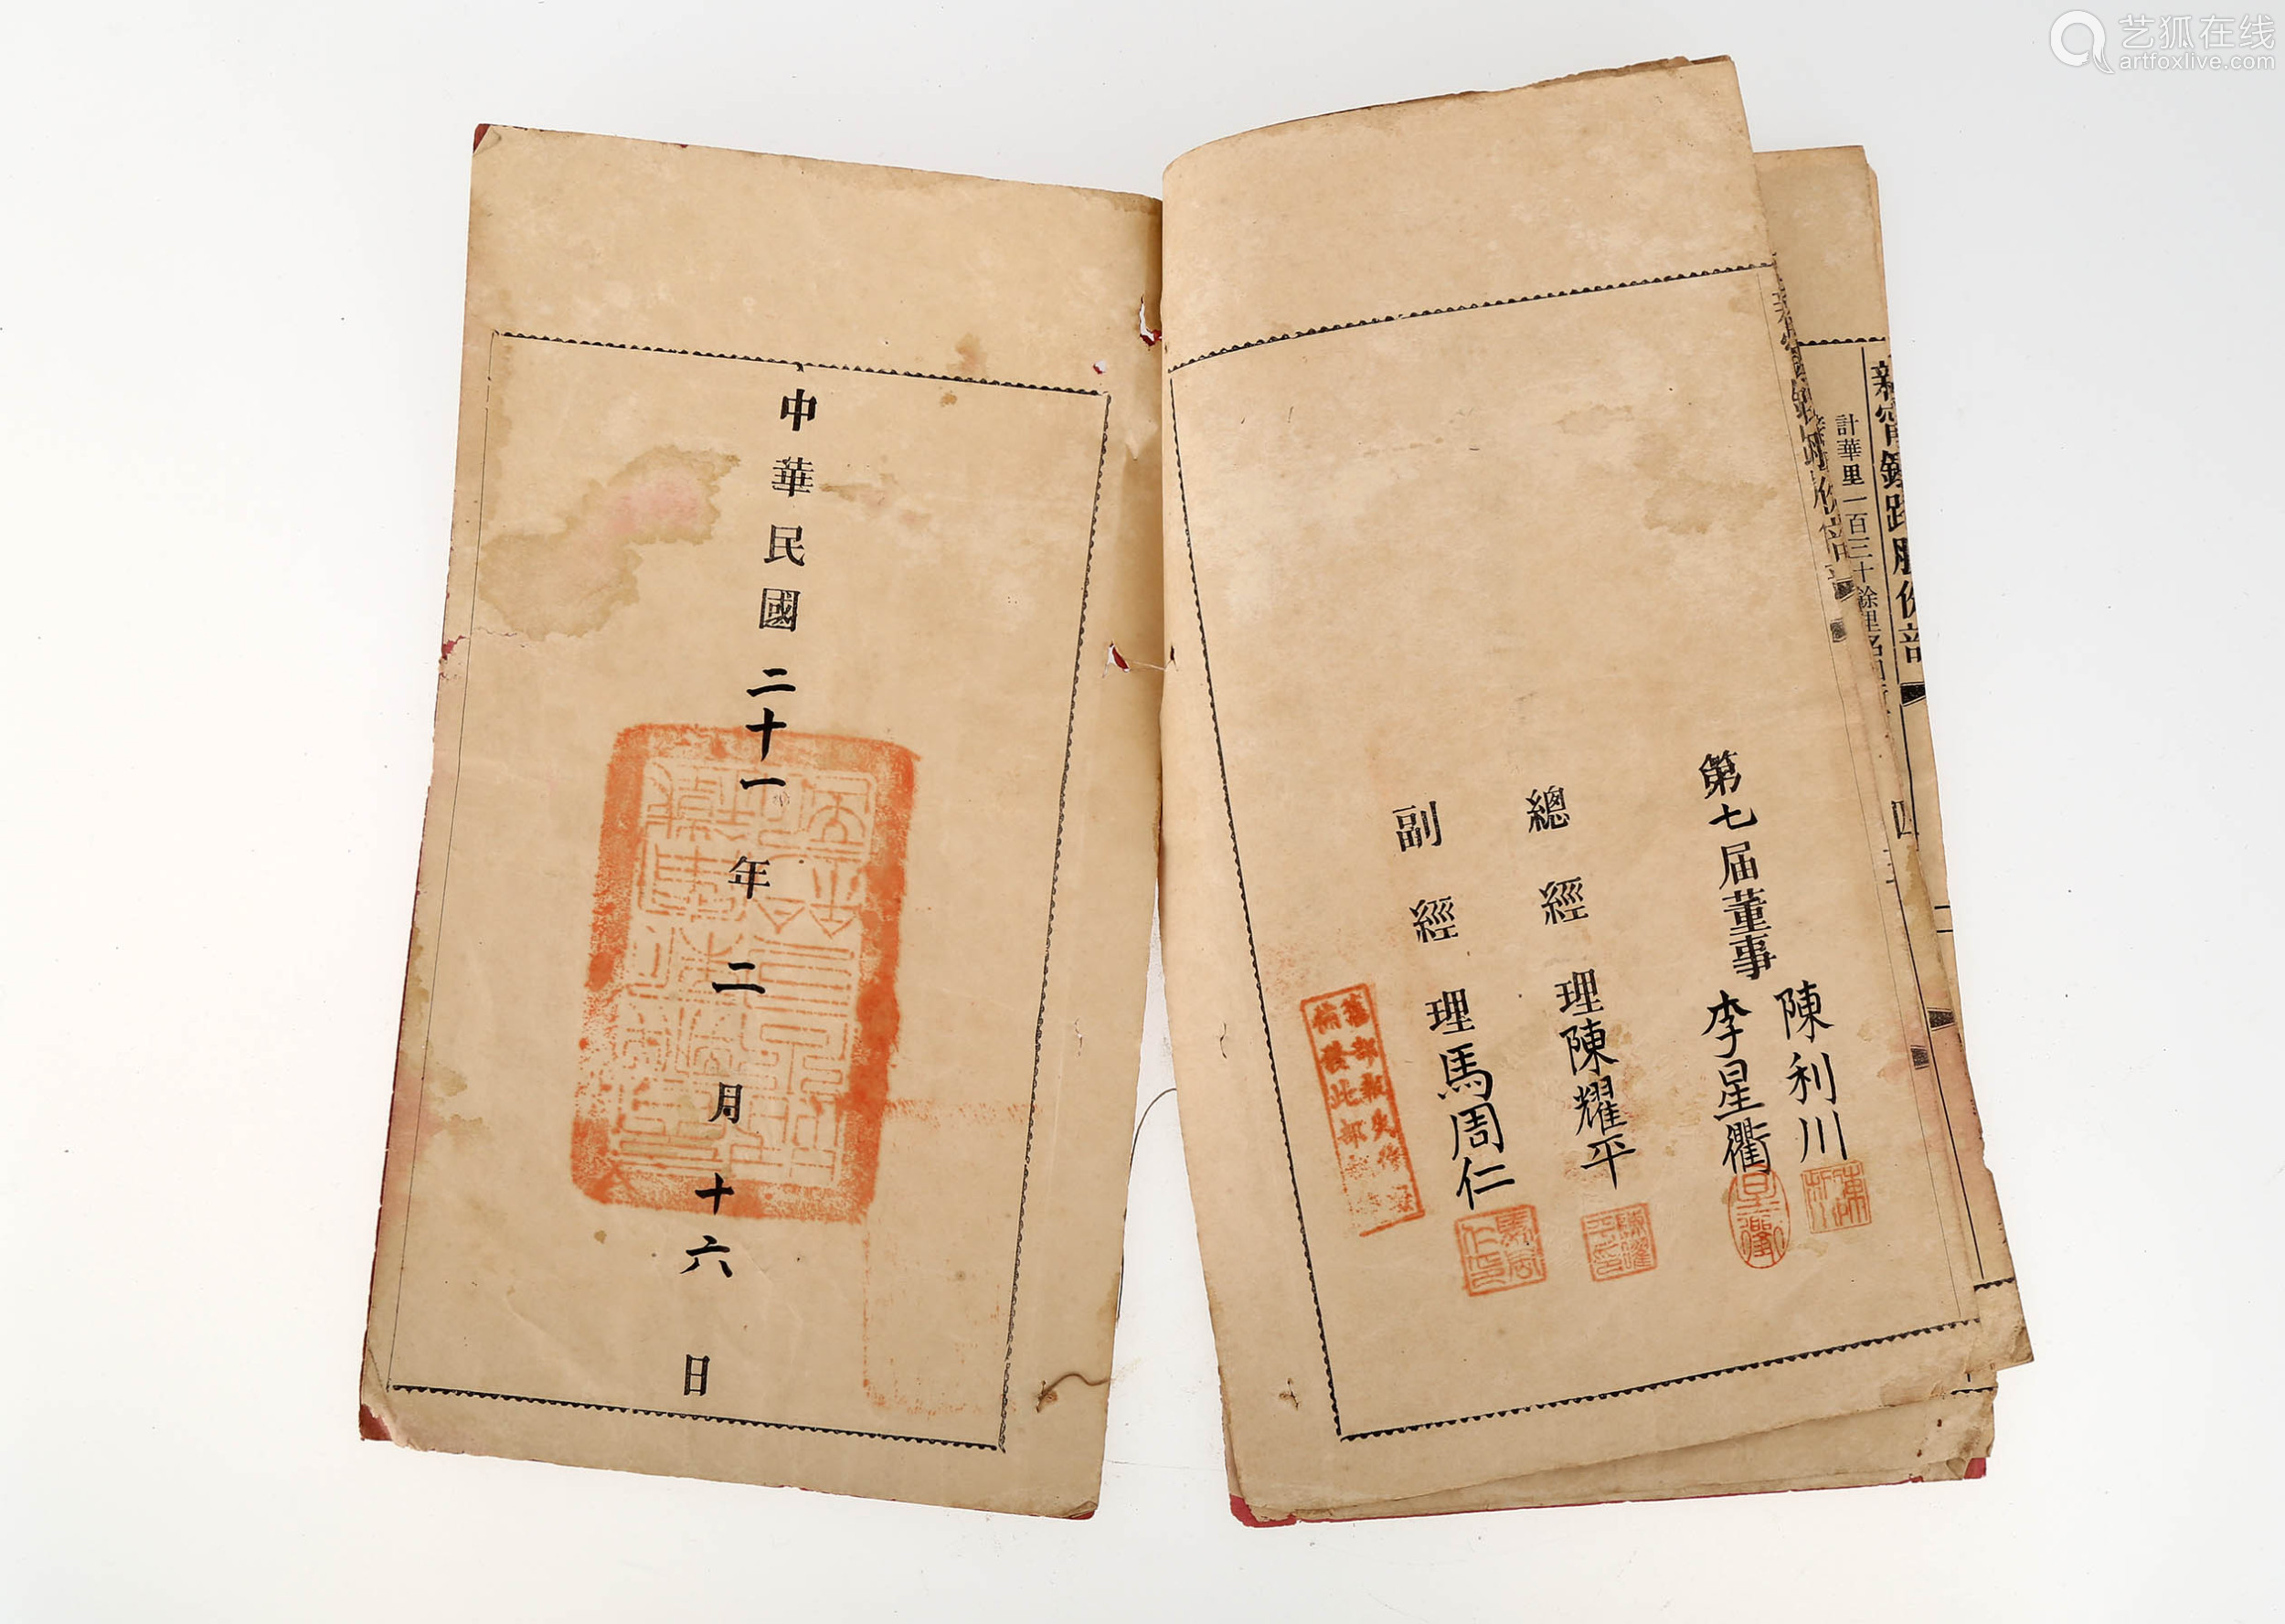 """A QING DYNASTY BOOKLET OF """"GUANGDONG XIN-MI RAILWAY CORPORATION"""" STOCK CERTIFICATES.PAGES 6. B028."""